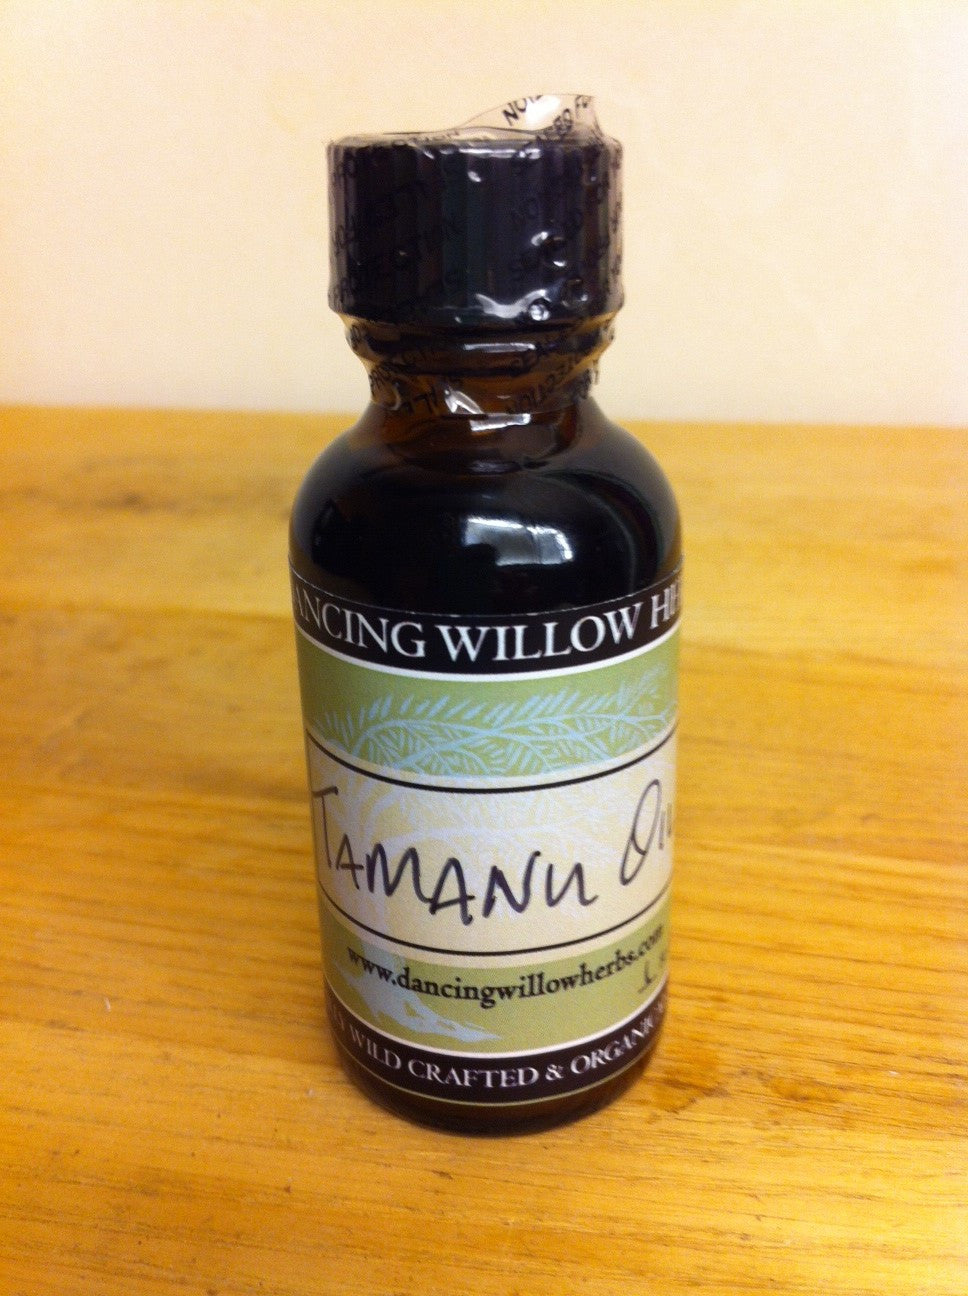 Tanamu Oil - Dancing Willow Herbs oil - herbal formulas